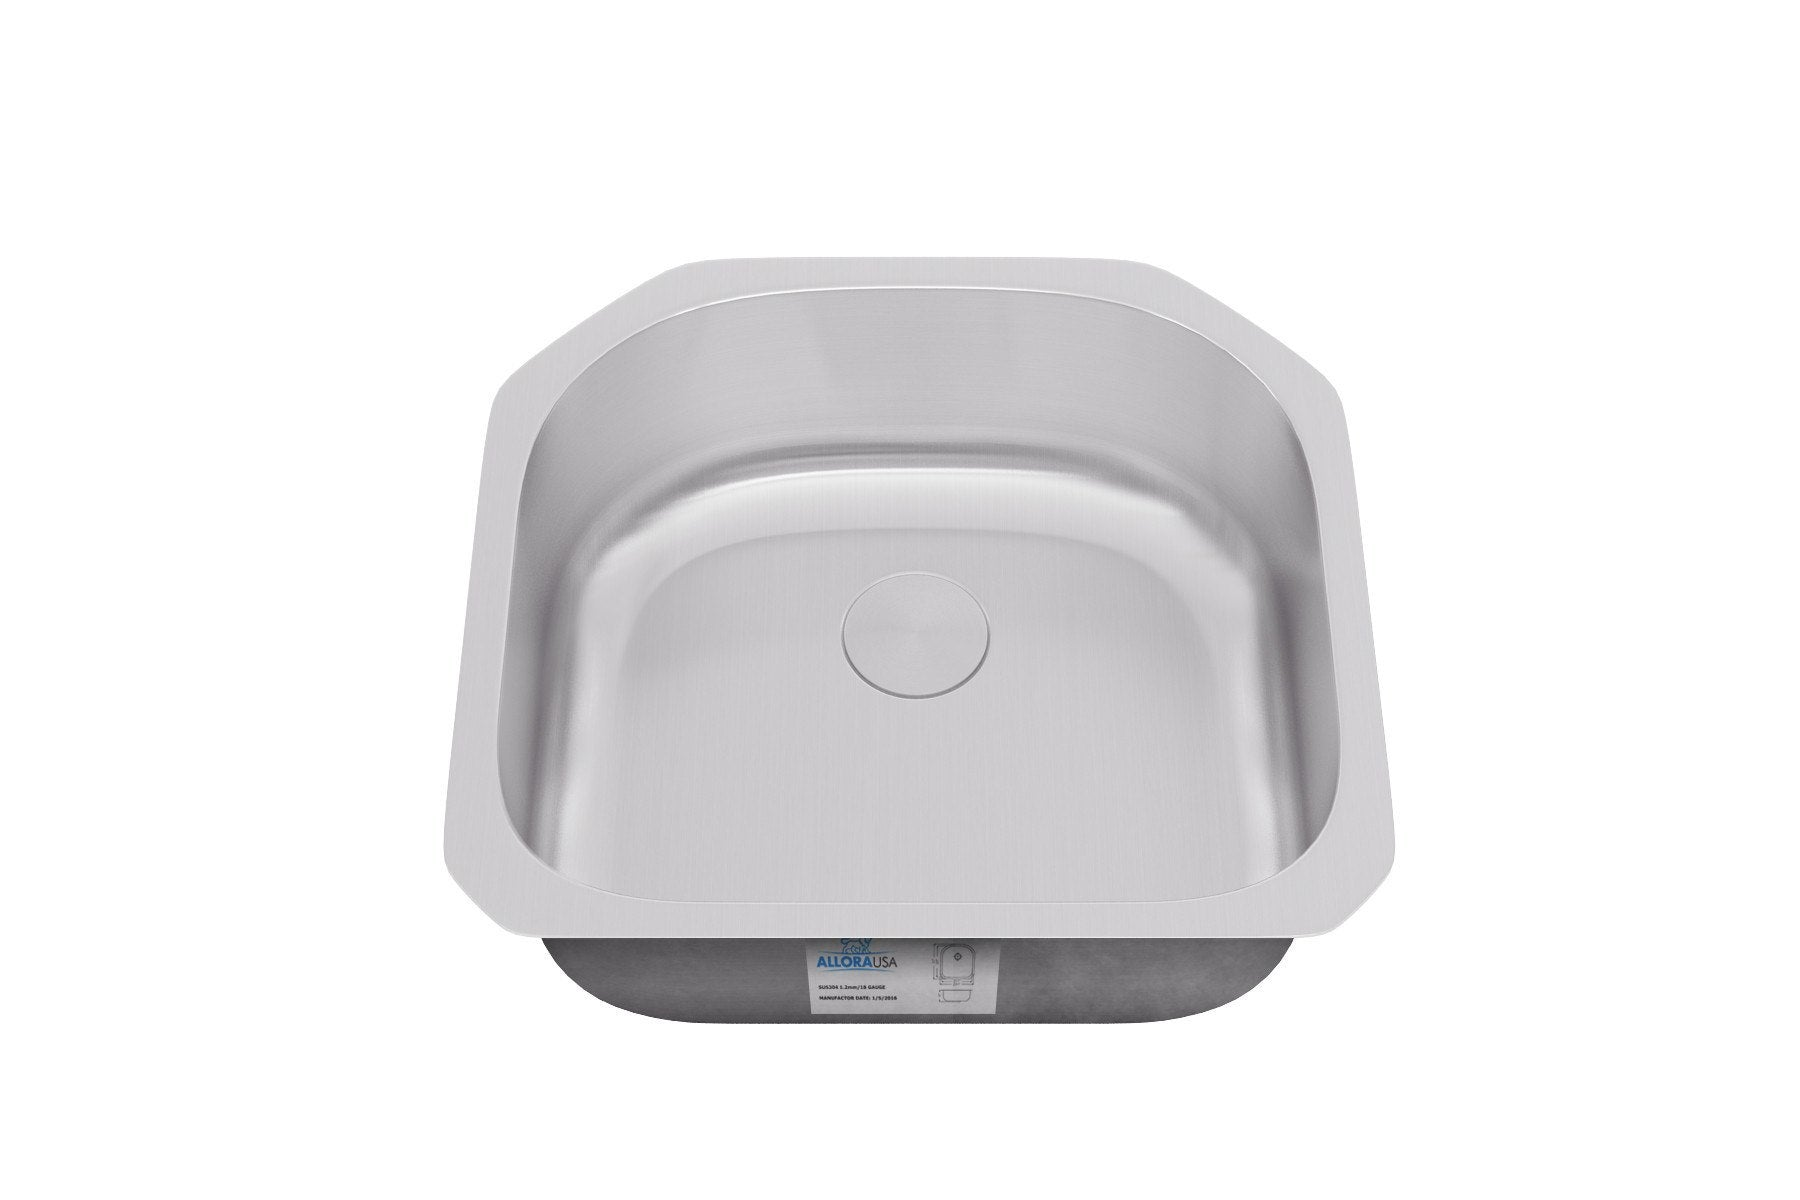 White Kitchen Sink Undermount Allora Usa Ksn 2321 Kitchen Sink Undermount D Shape Single